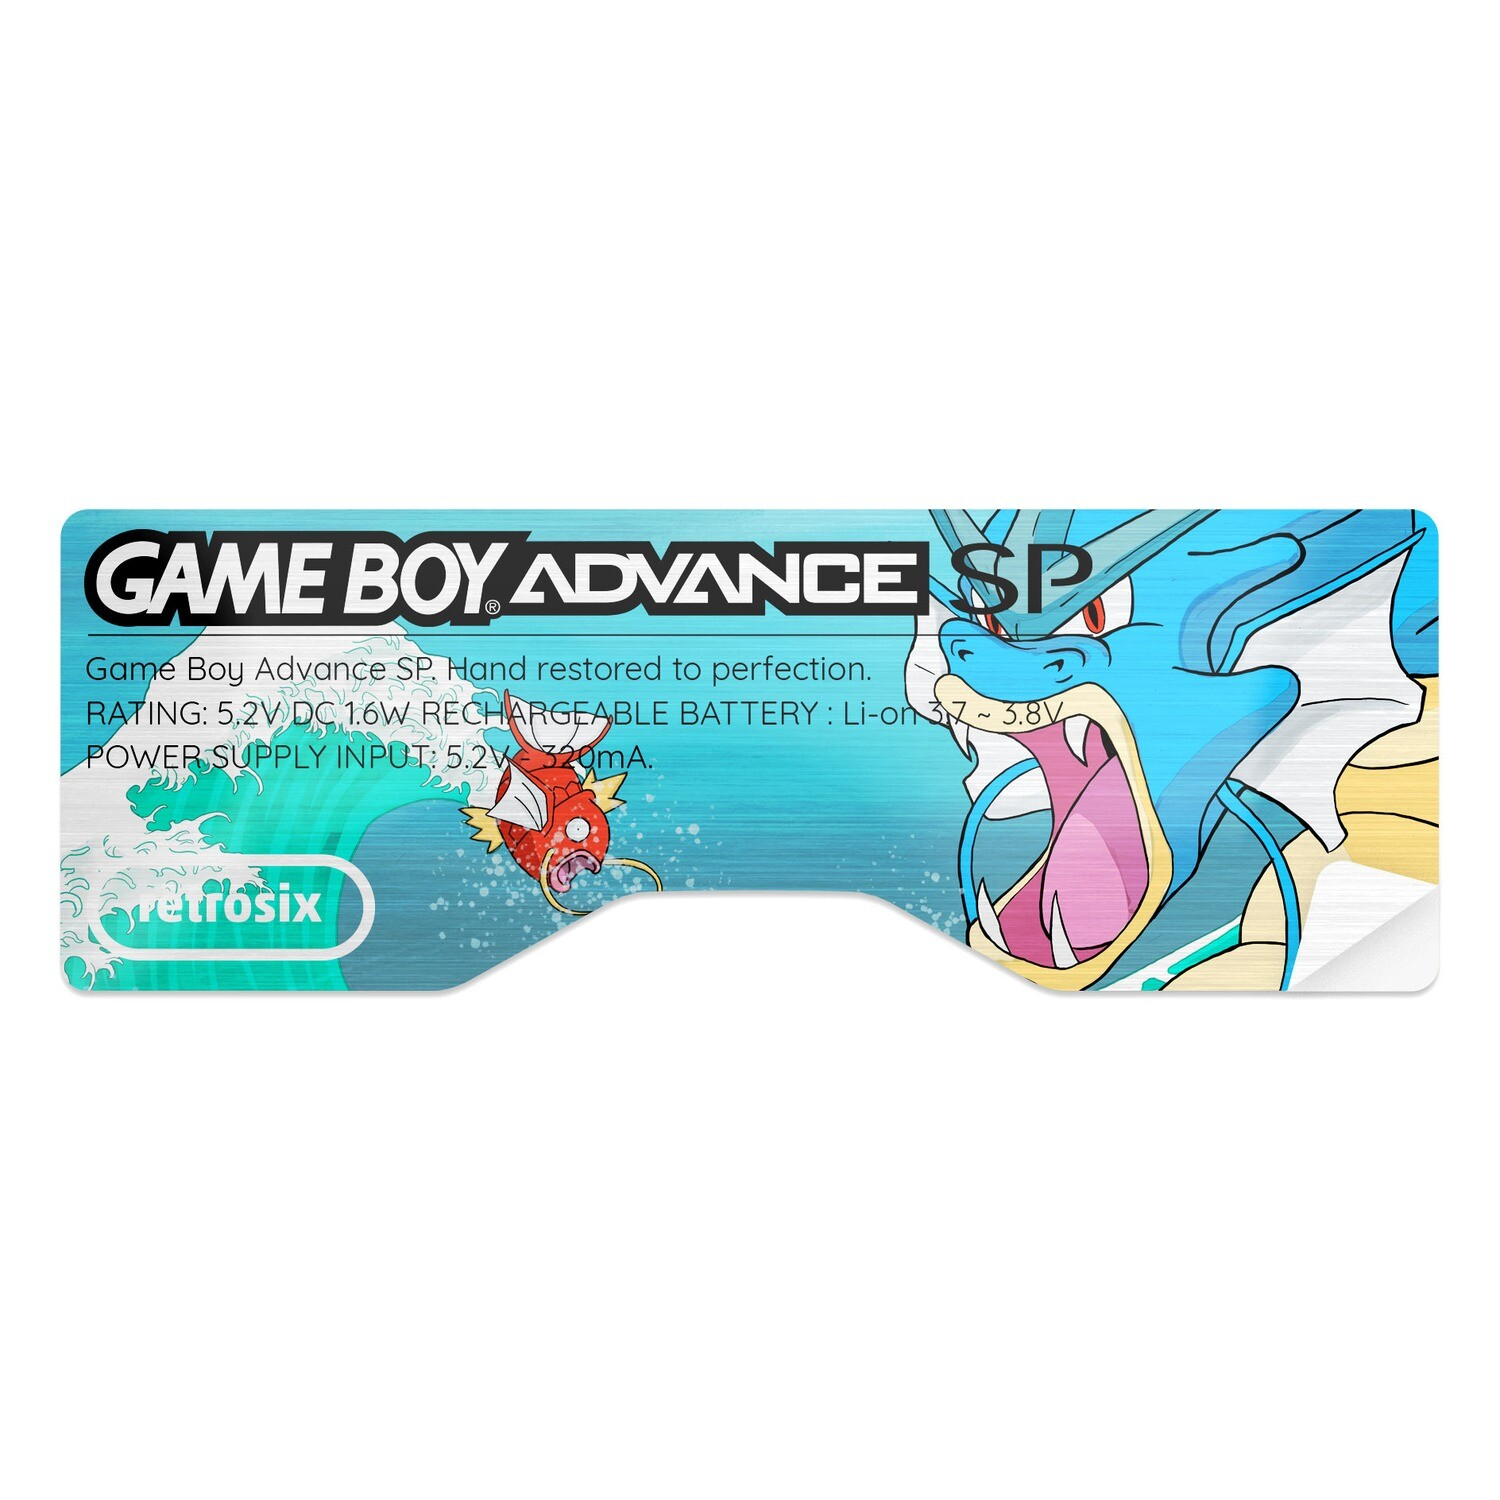 Game Boy Advance SP Sticker (Gyarados)